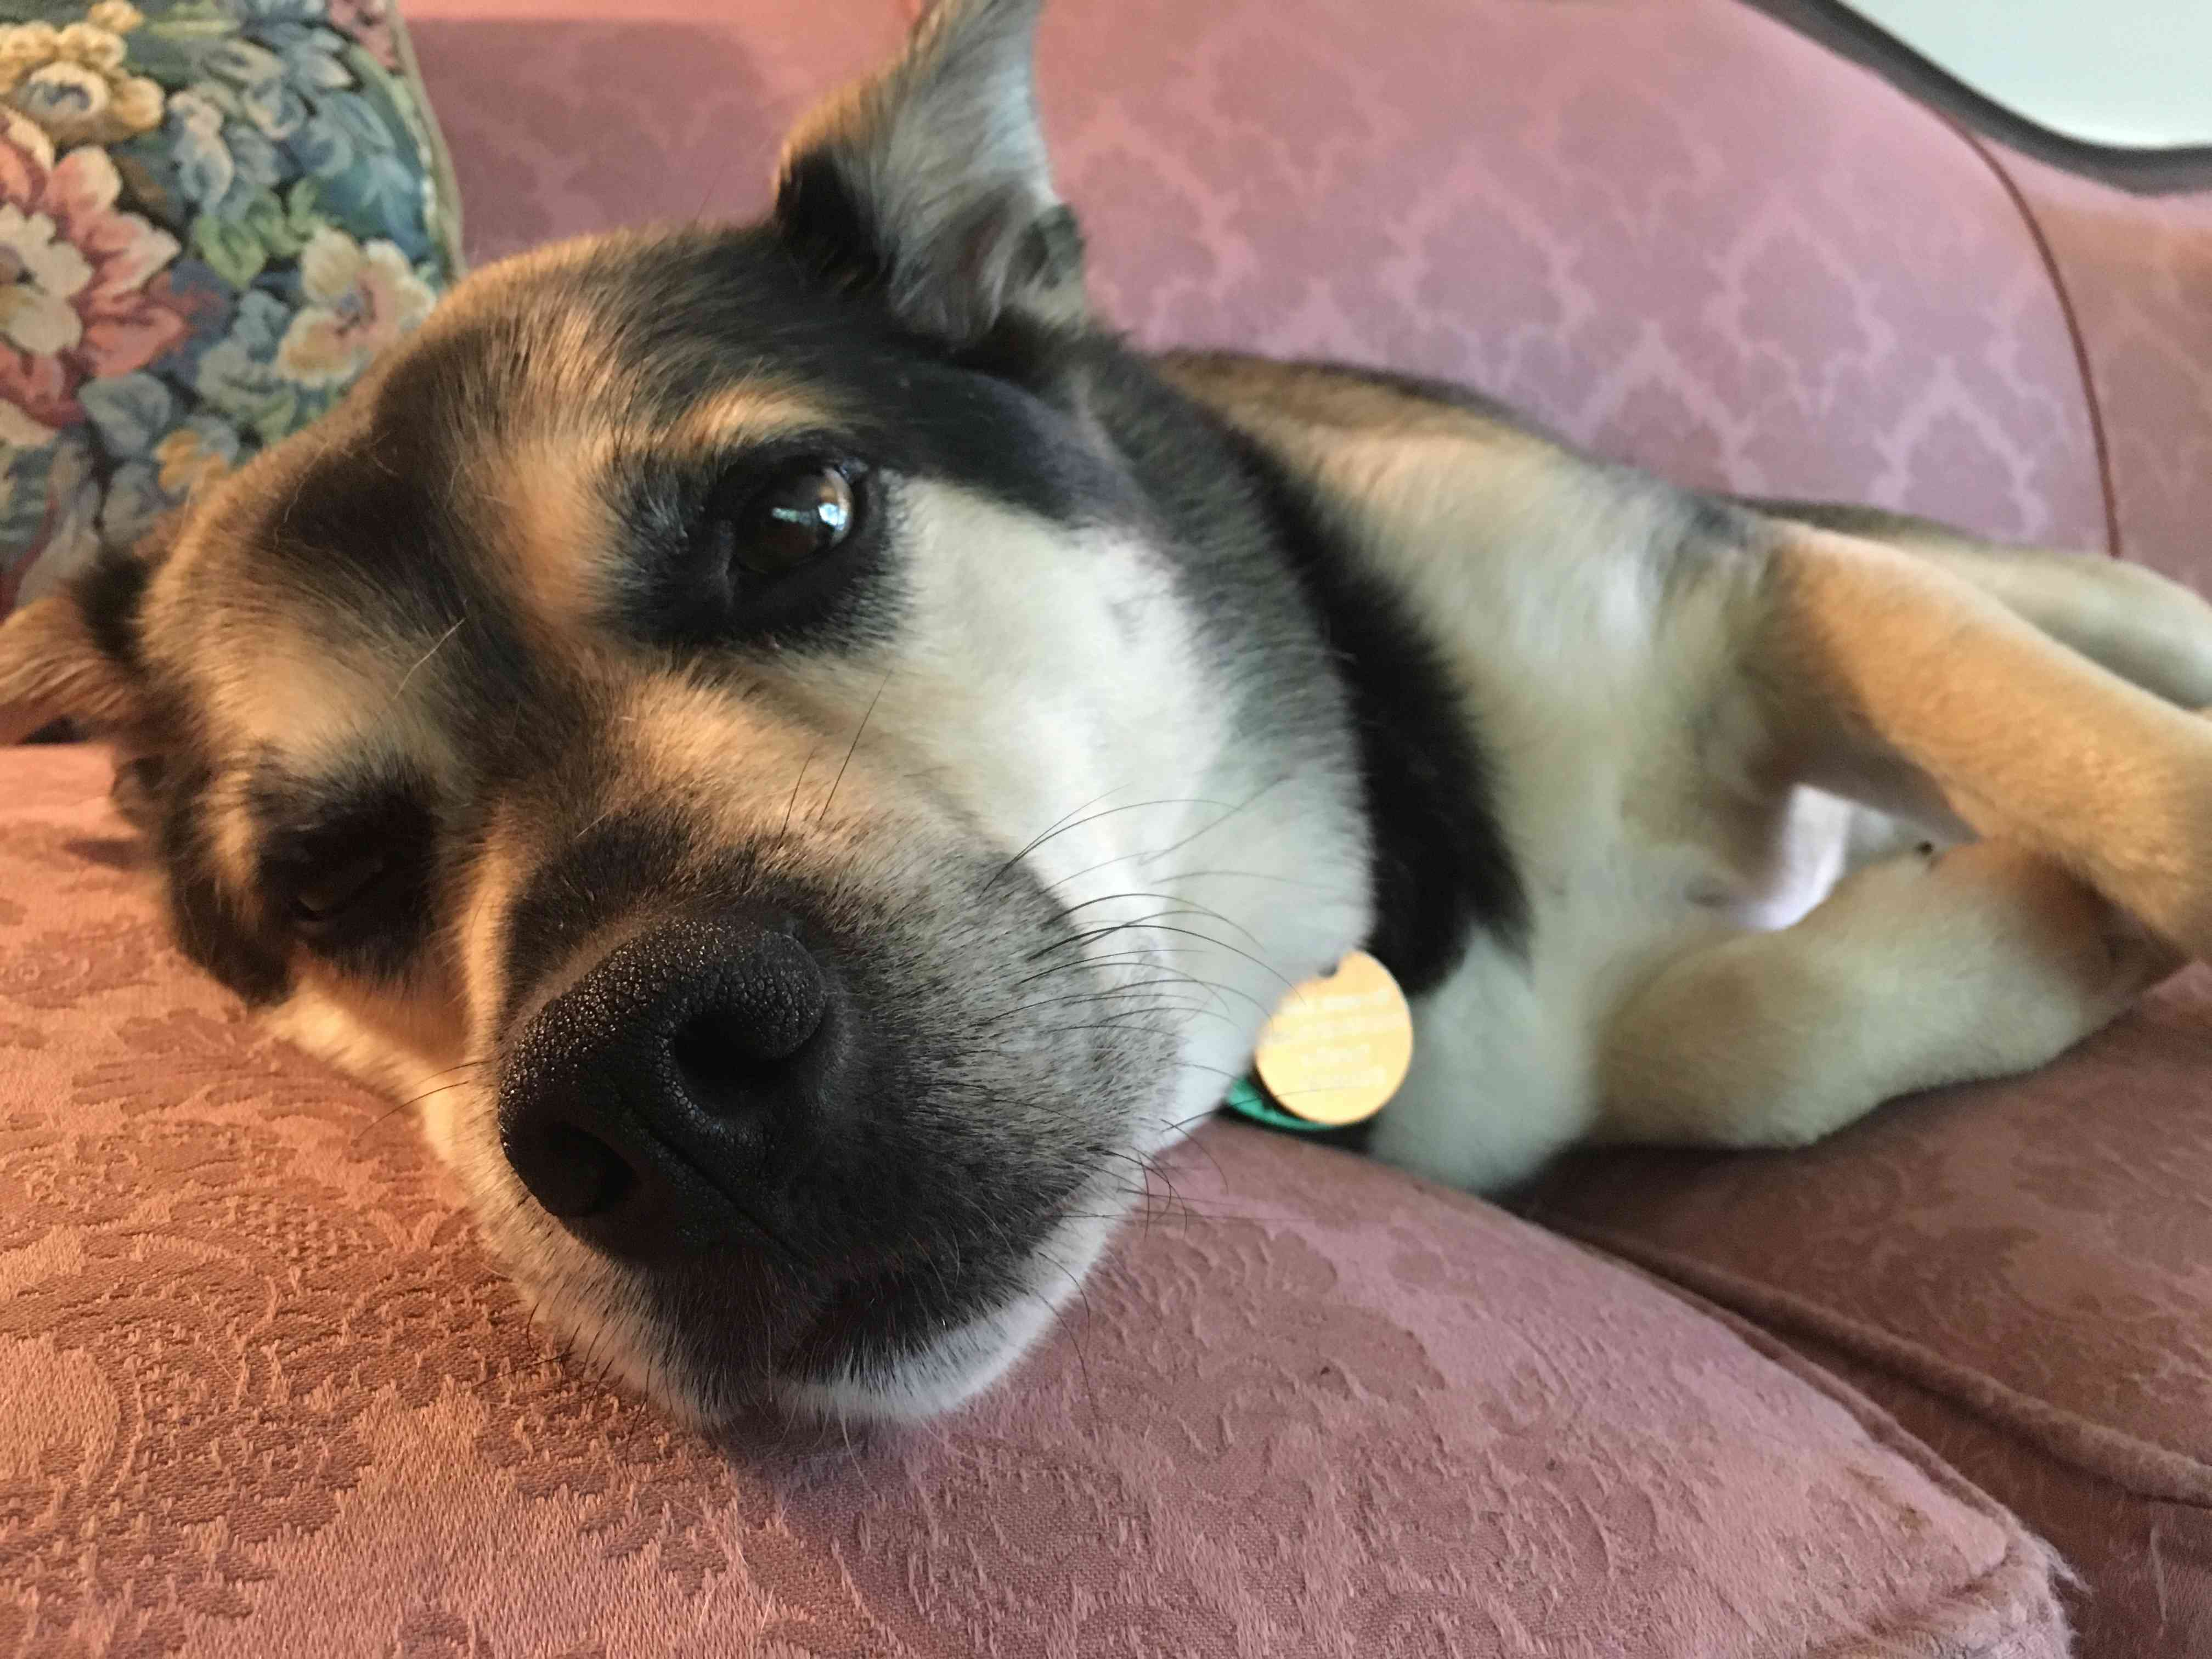 Otis, a mixed-breed rescue dog, resting on a couch